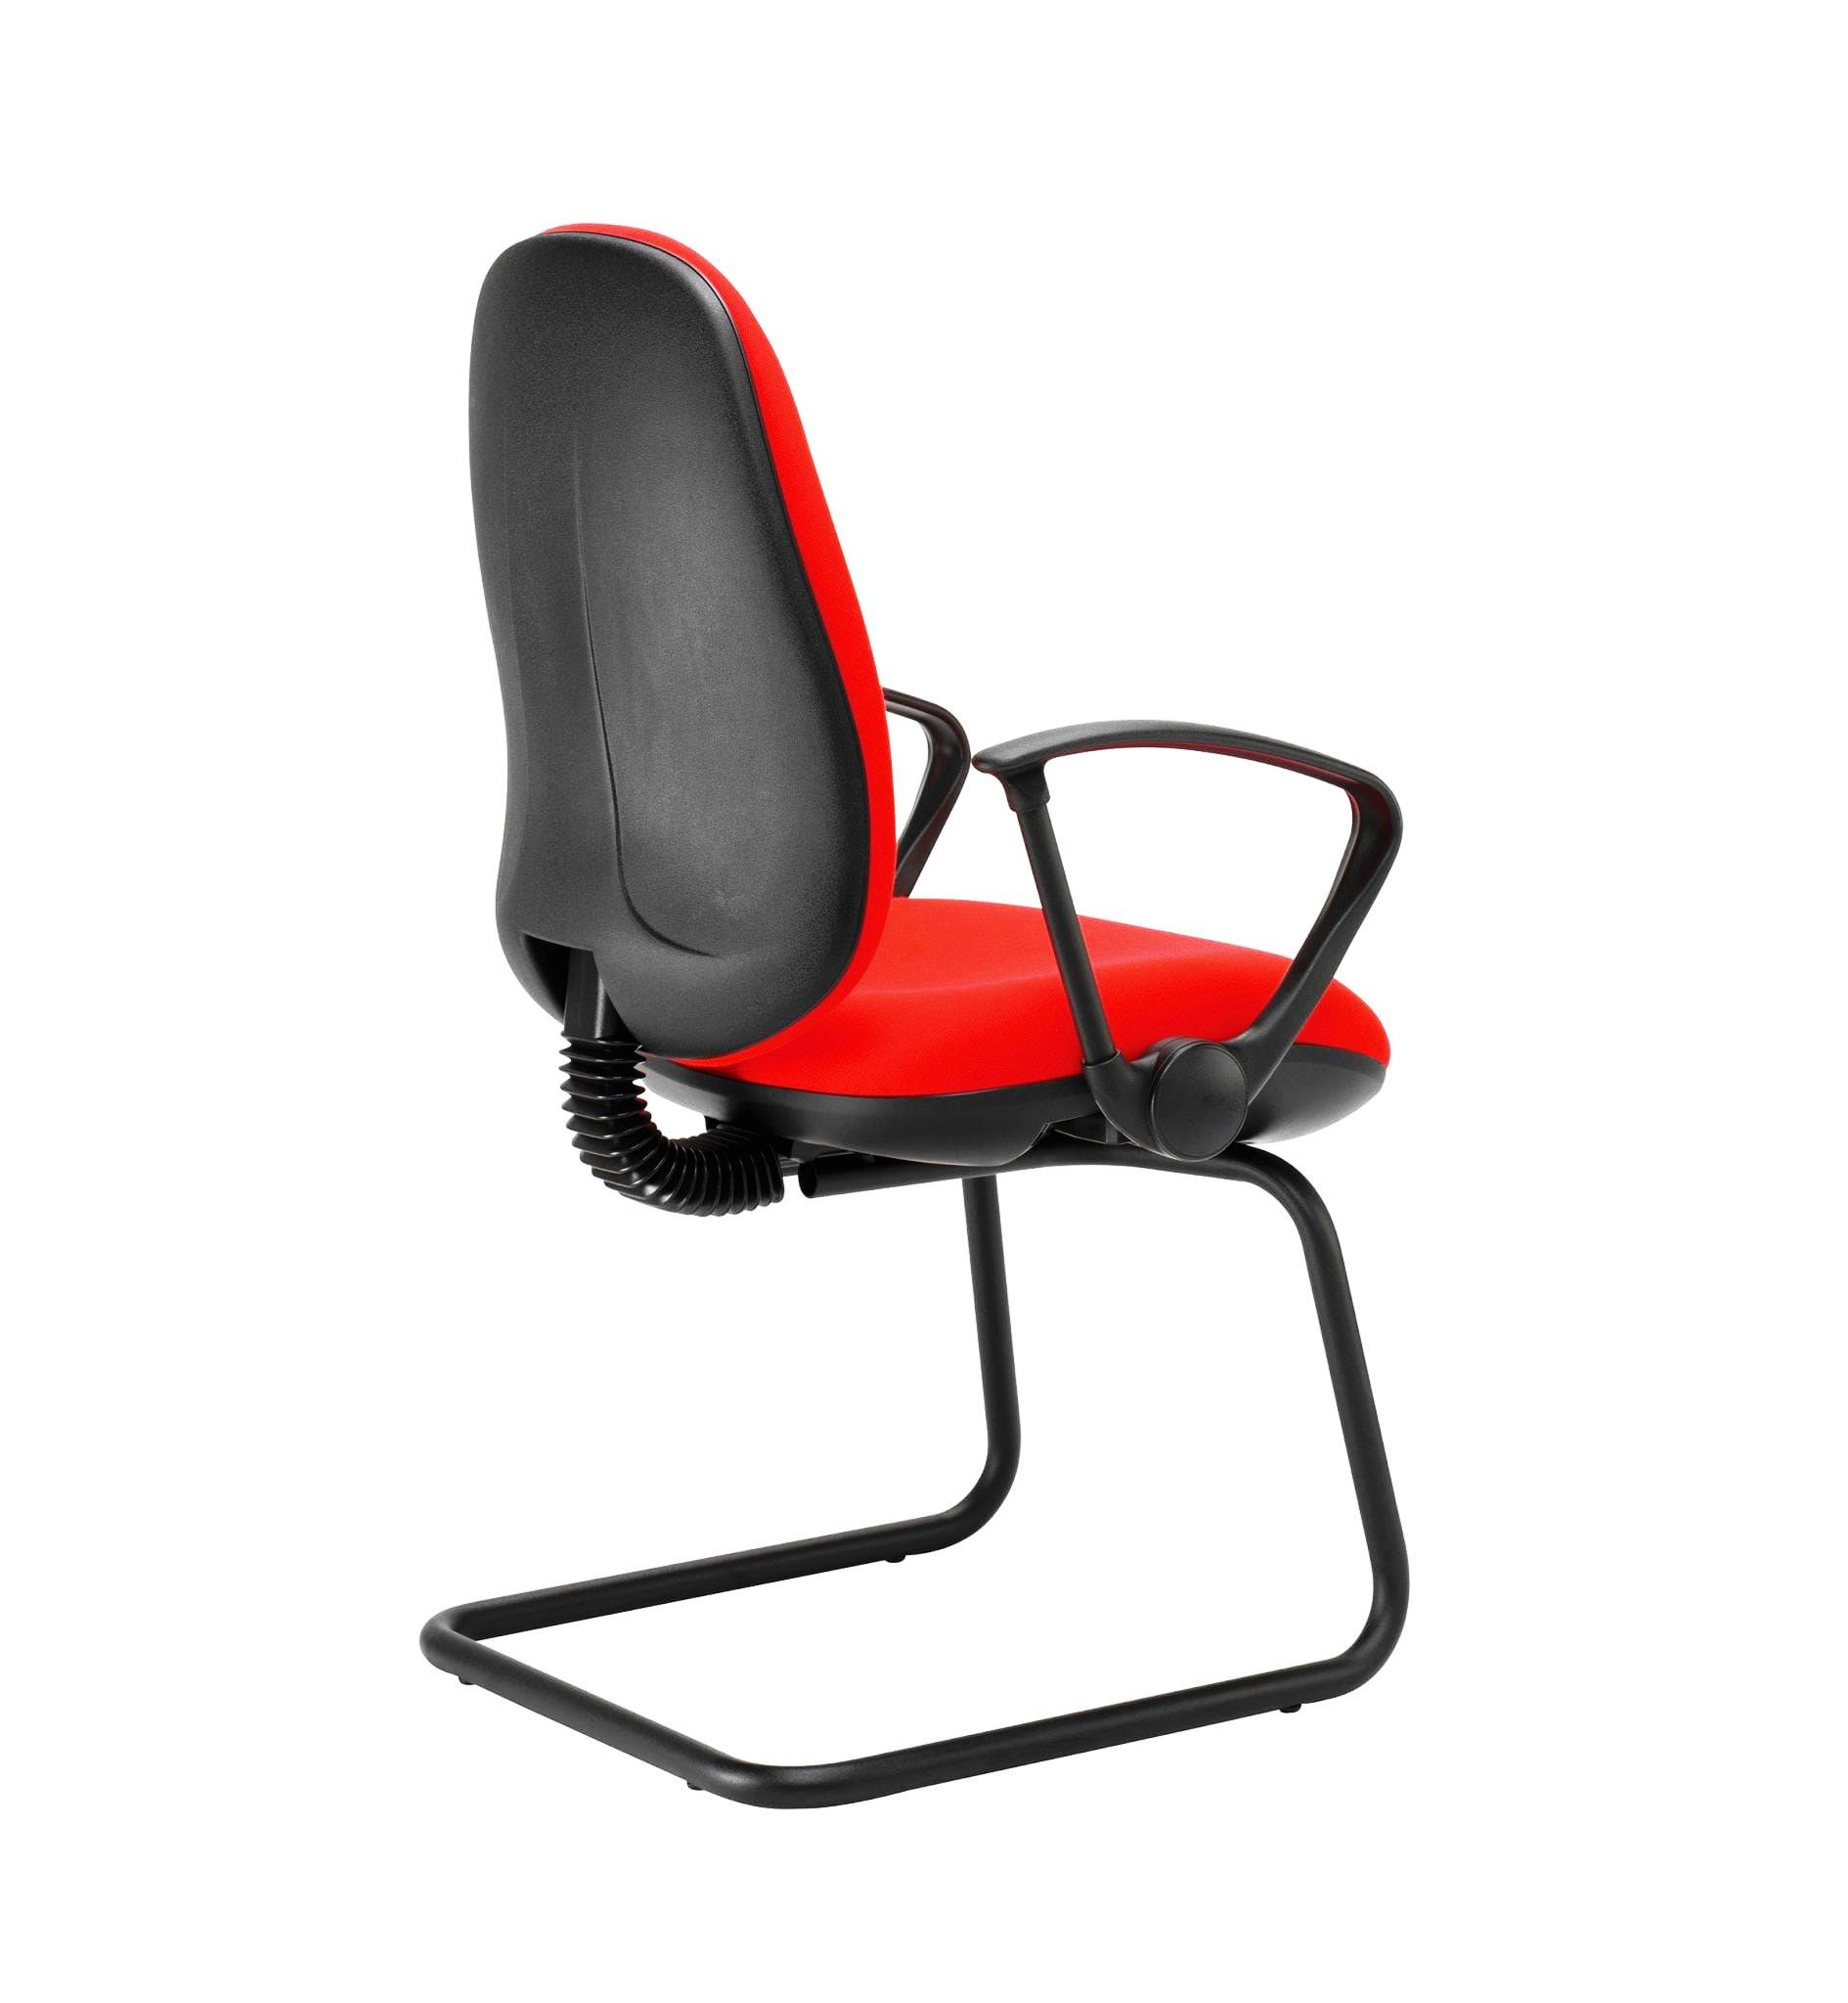 Auctor Operator Chair With Arms